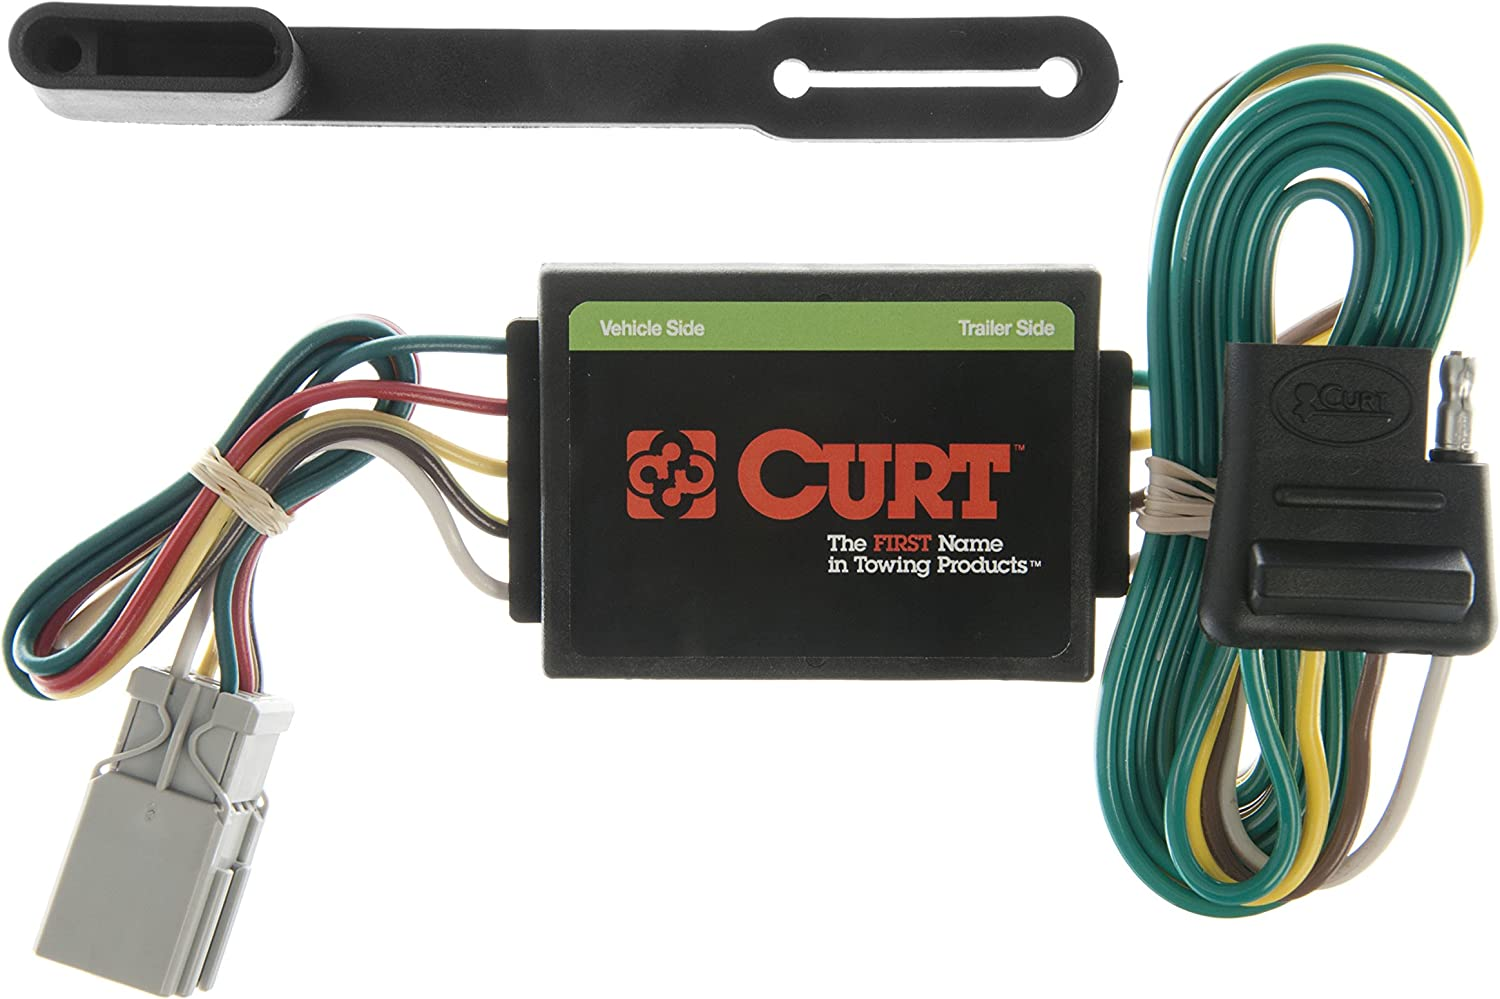 CURT Class 3 Trailer Hitch Tow Package with 2 Ball for 1999-2004 Honda Odyssey